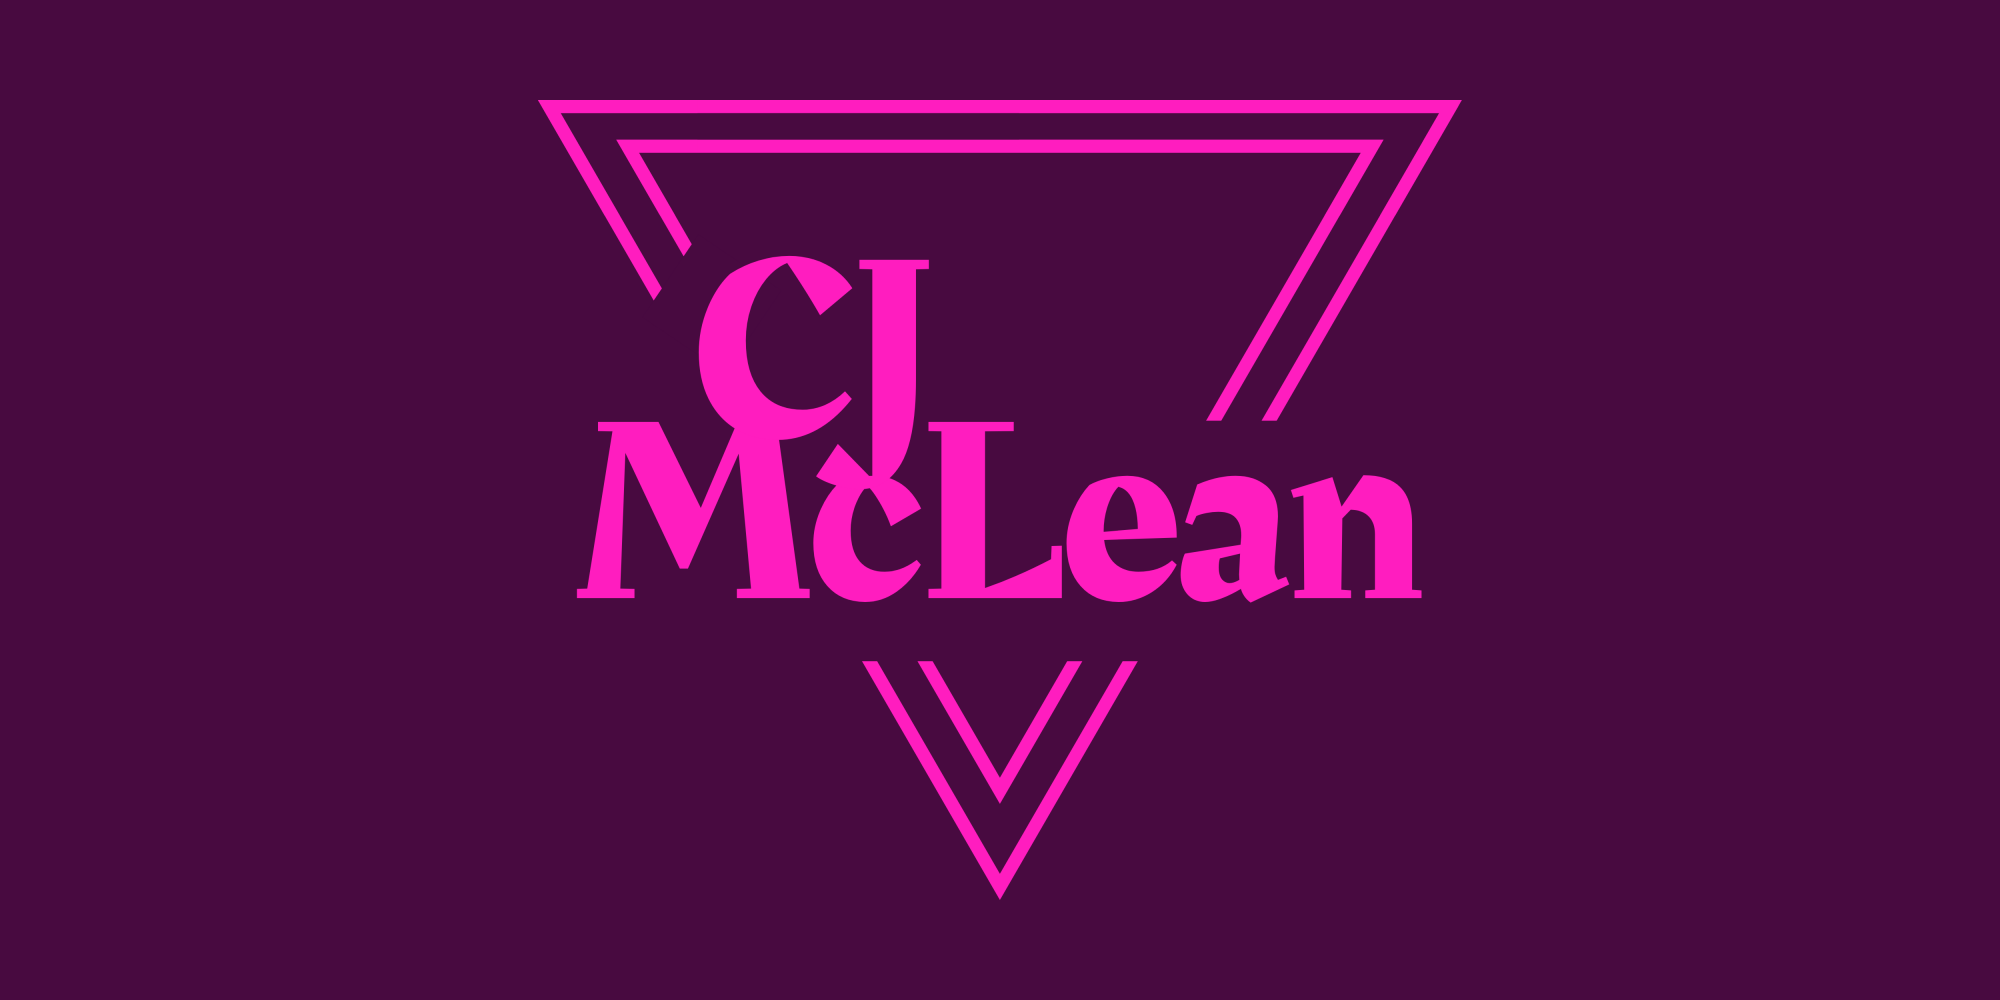 CJ McLean – Website